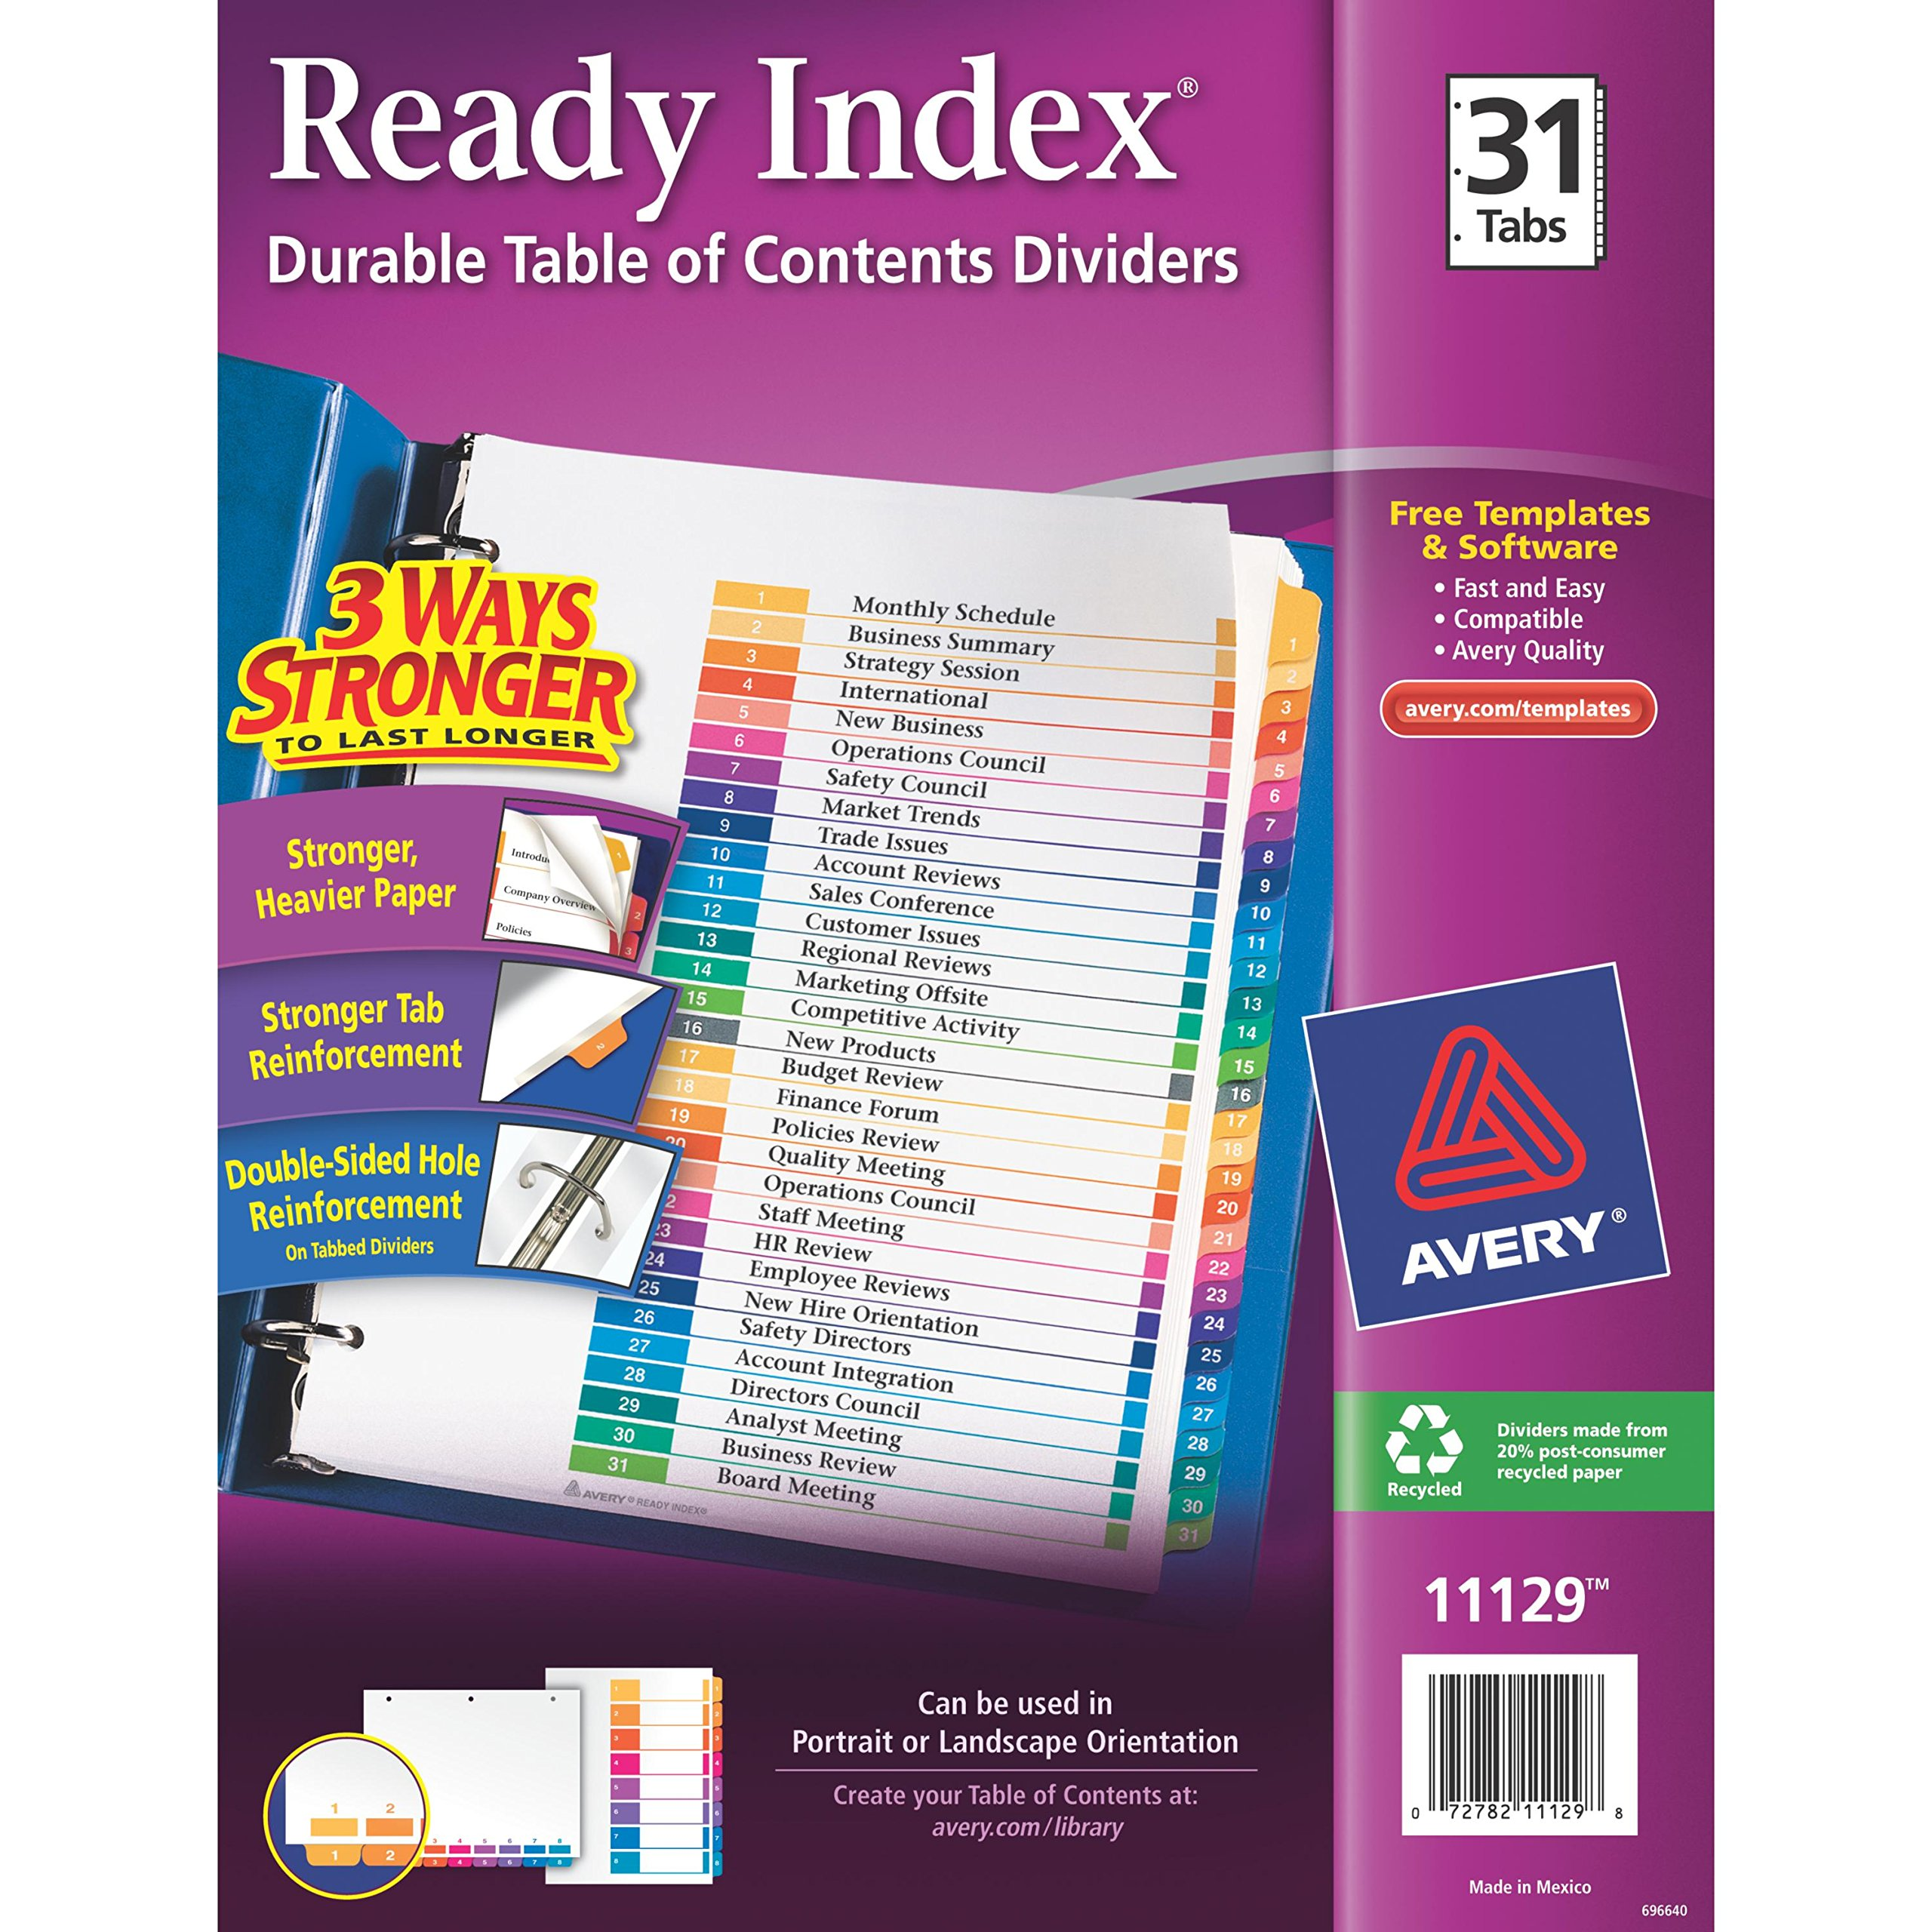 Avery Ready Index Table of Contents Dividers, 31-Tabs, Case Pack of 12 Sets (11129)